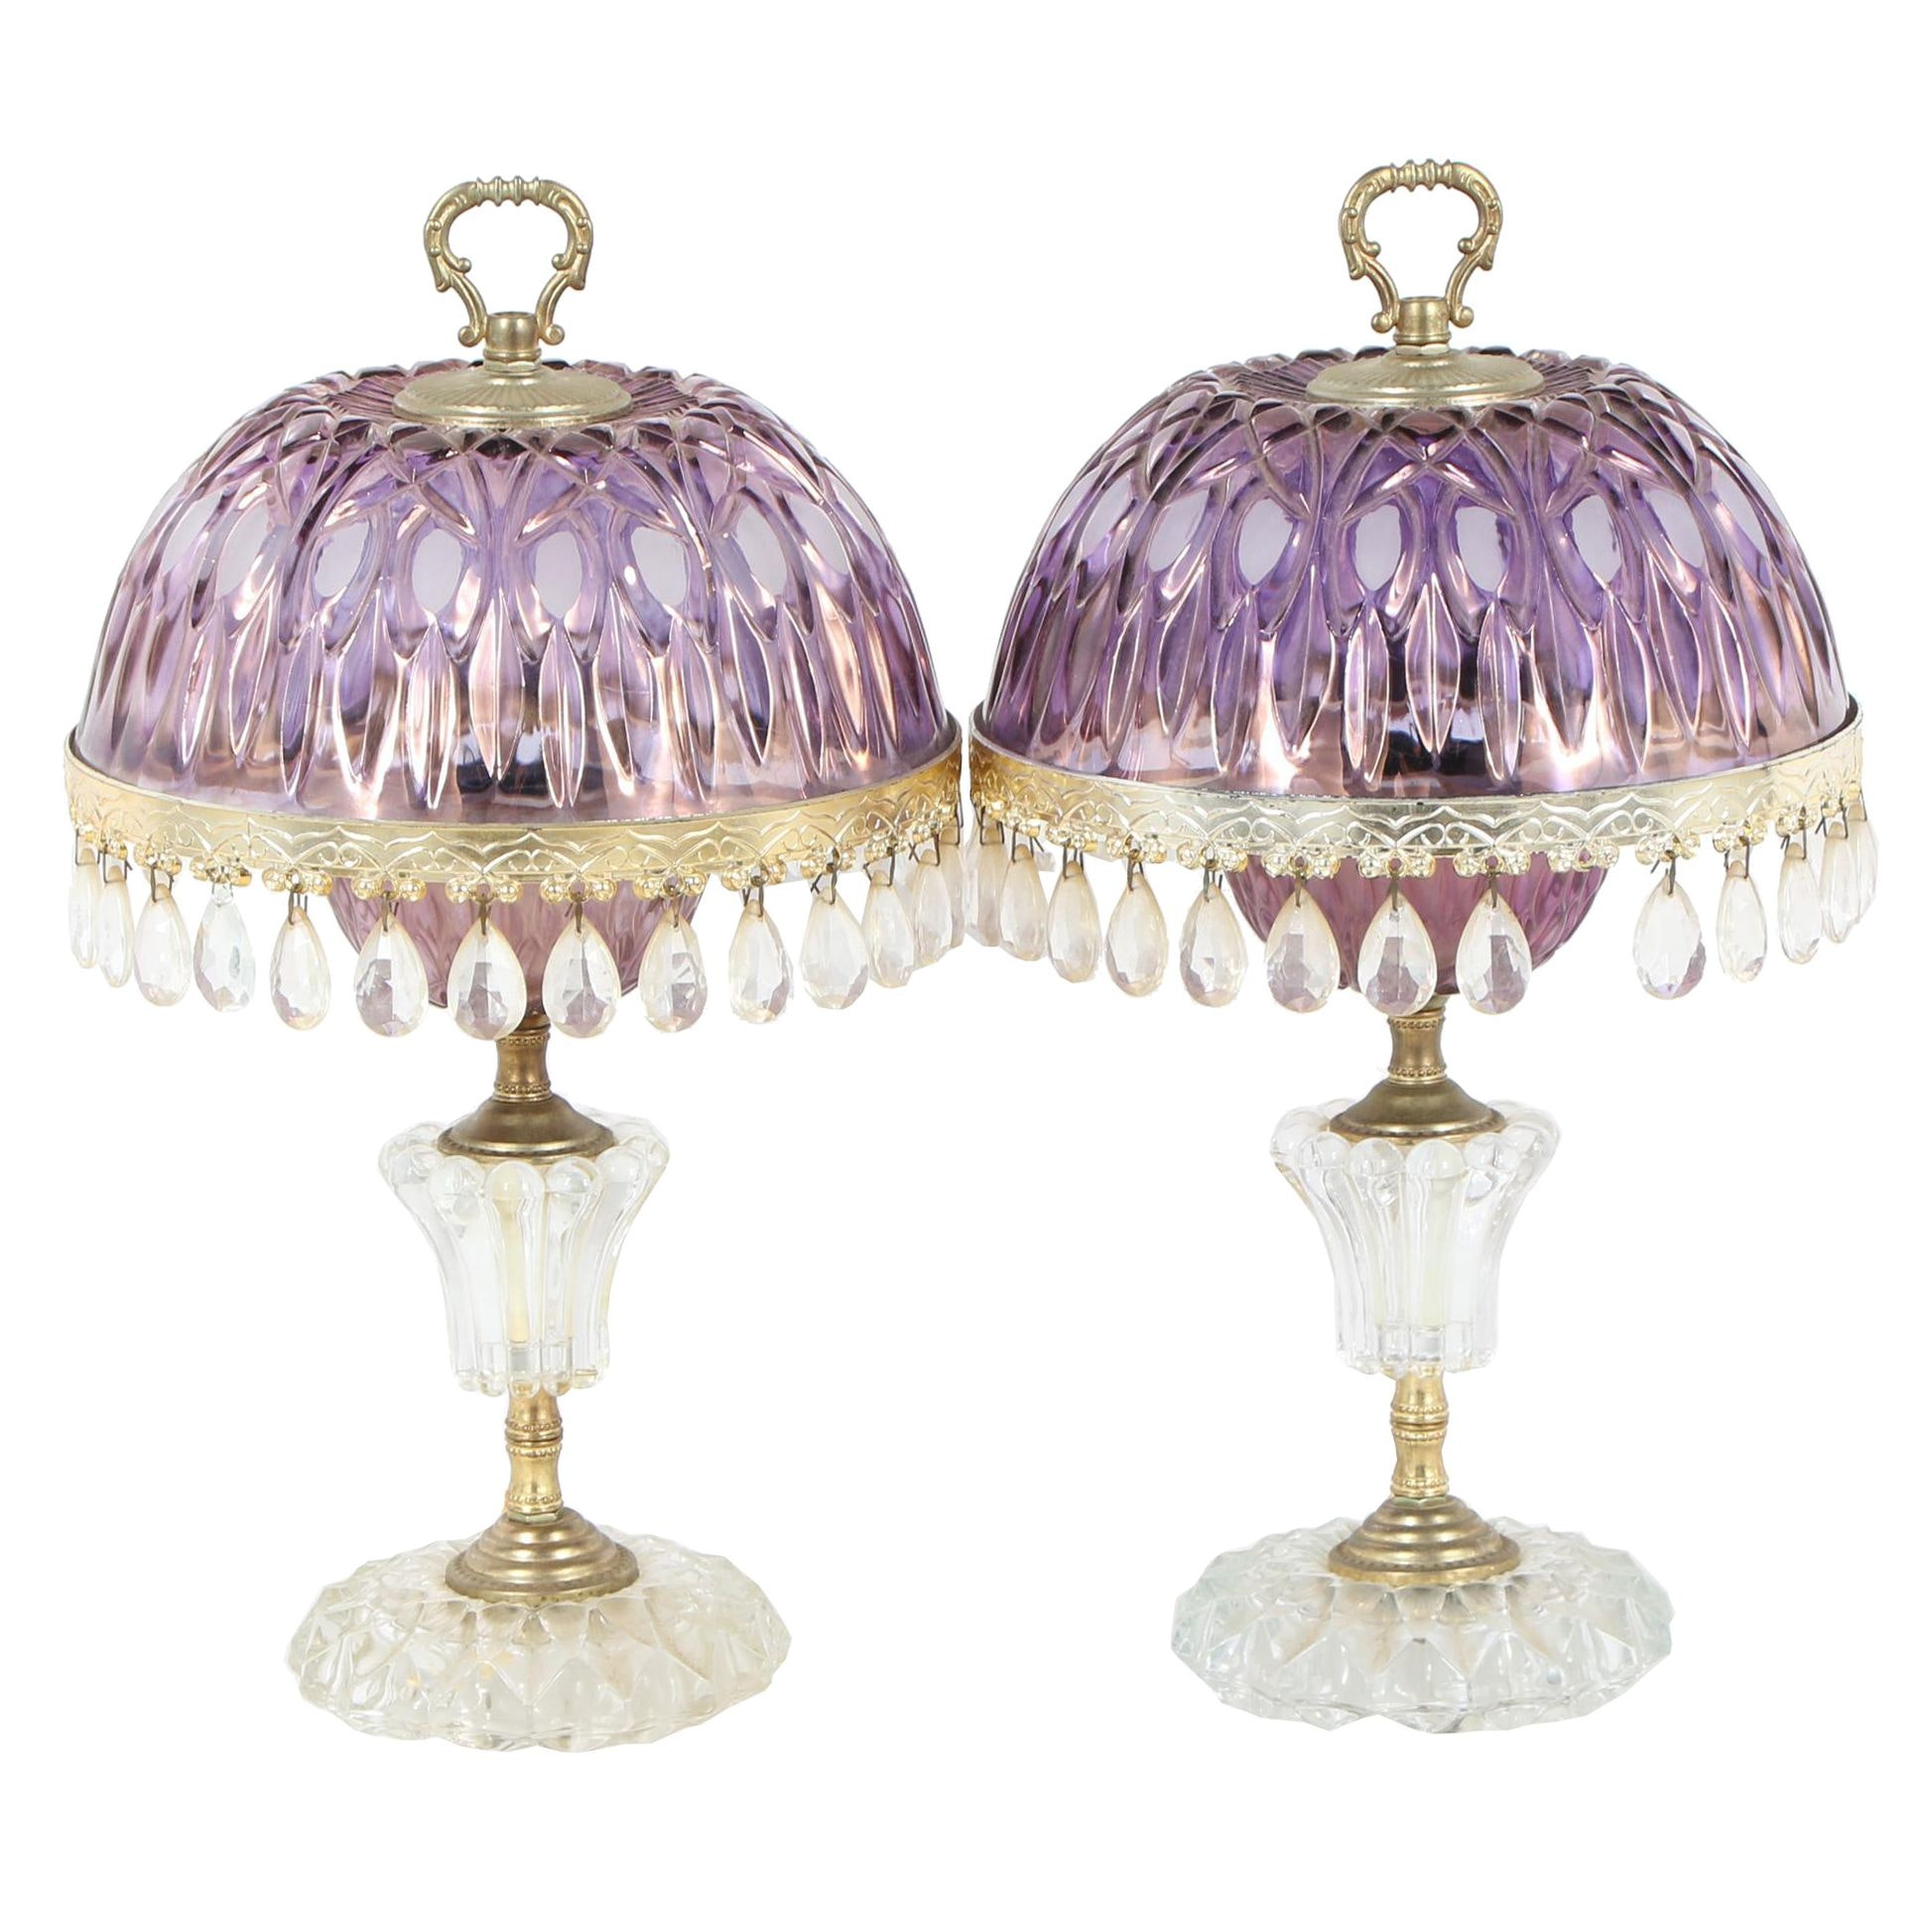 Lavender Tint Glass Boudoir Lamps with Teardrops, Mid 20th Century